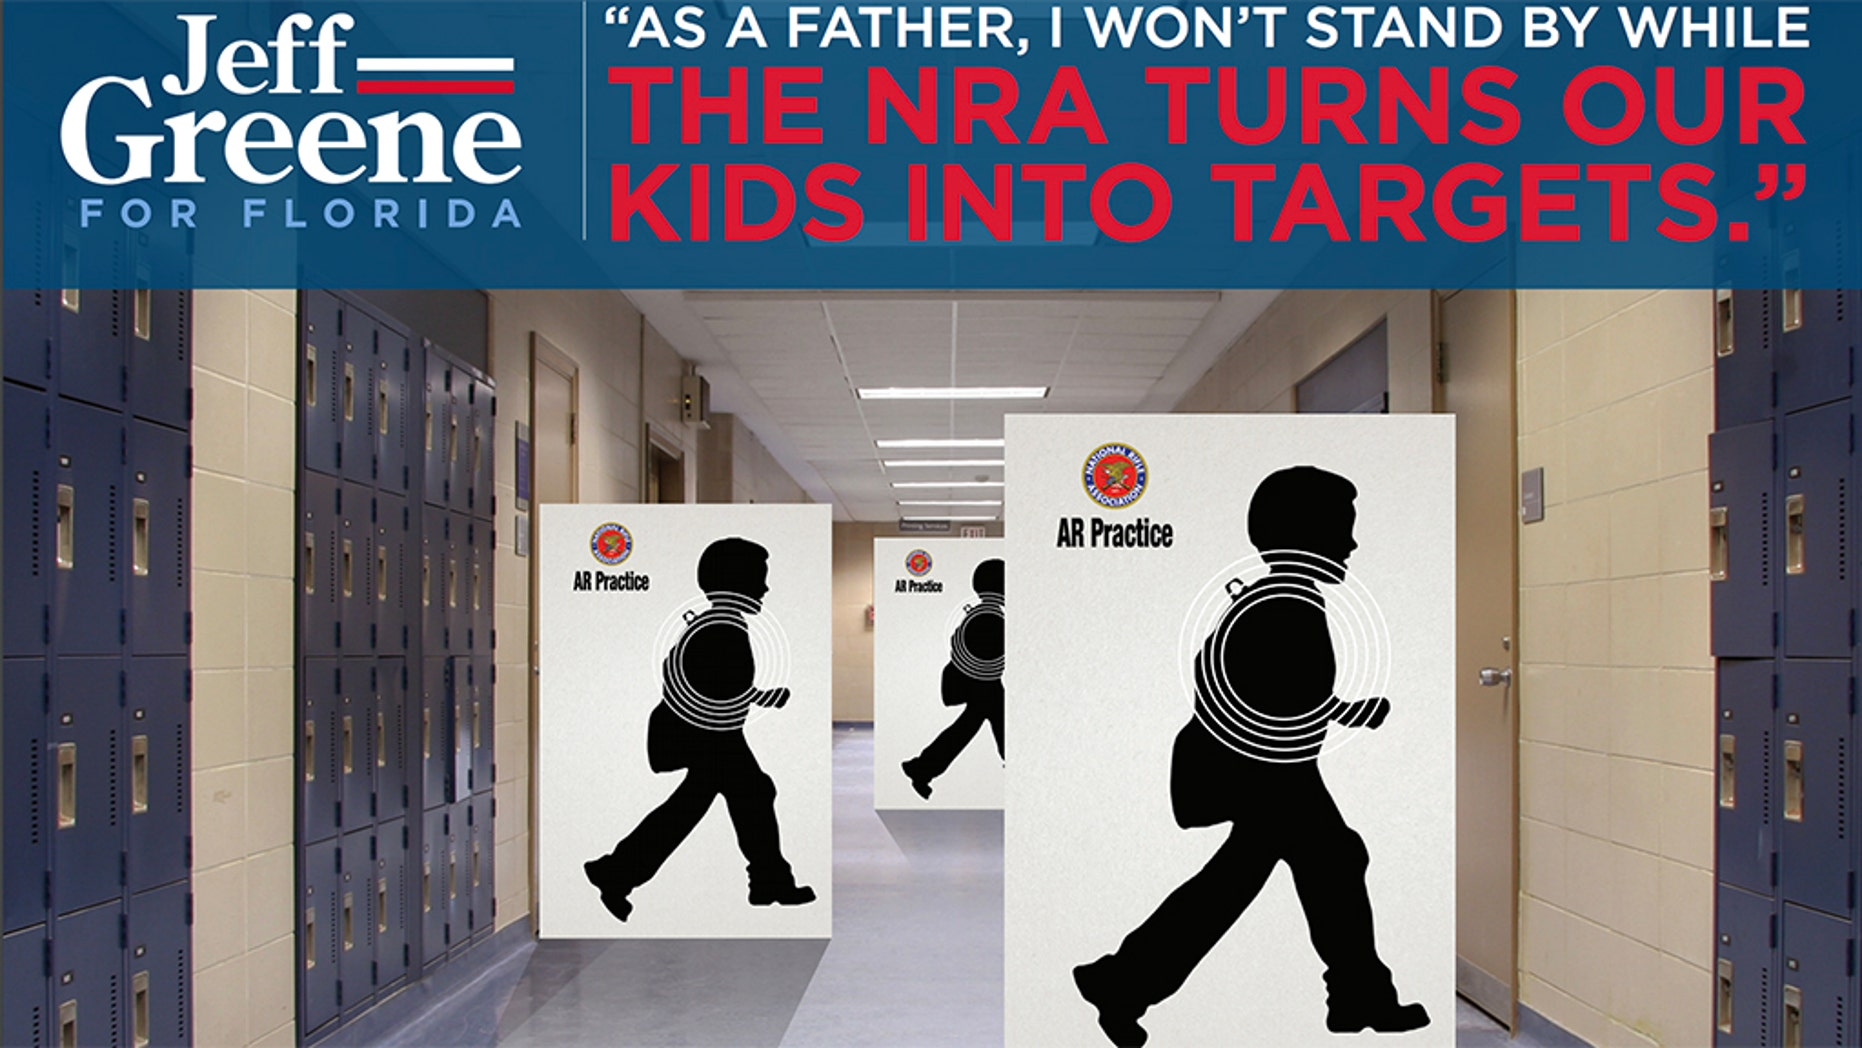 """A leading NRA official called Florida gubernatorial candidate Jeff Greene's mailer, which accuses the gun rights organization of using children as targets, """"repulsive."""""""